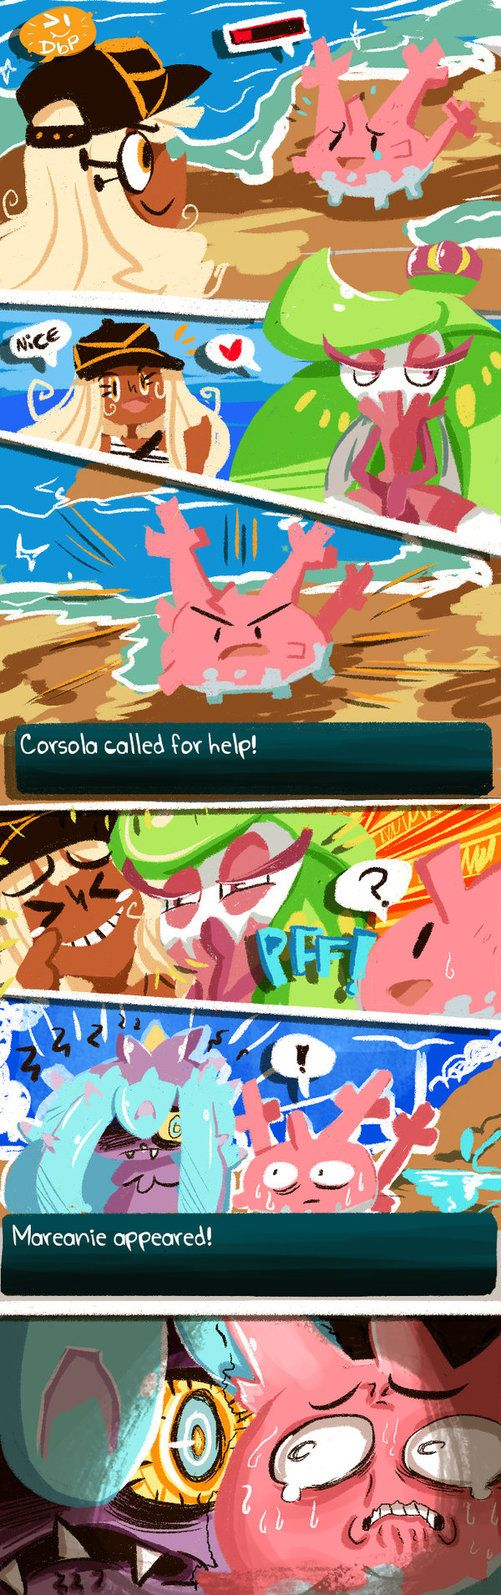 """It's found crawling on beaches and sea floors. the coral that grows on Corsola's head is as good as a five-star banquet to this Pokémon"" - Mareanie's Pokédex entry"